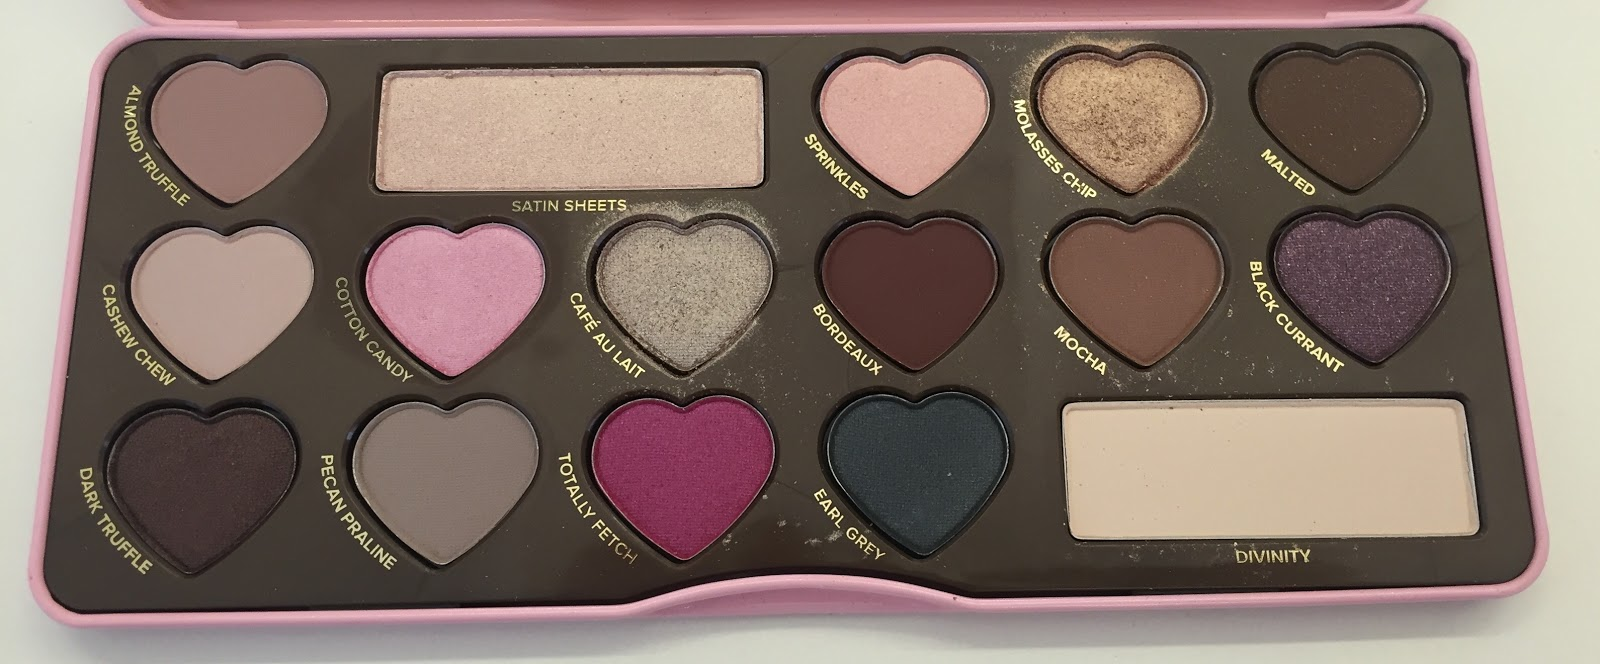 The Beauty of Life: On Wednesdays We Wear Pink: Too Faced ...